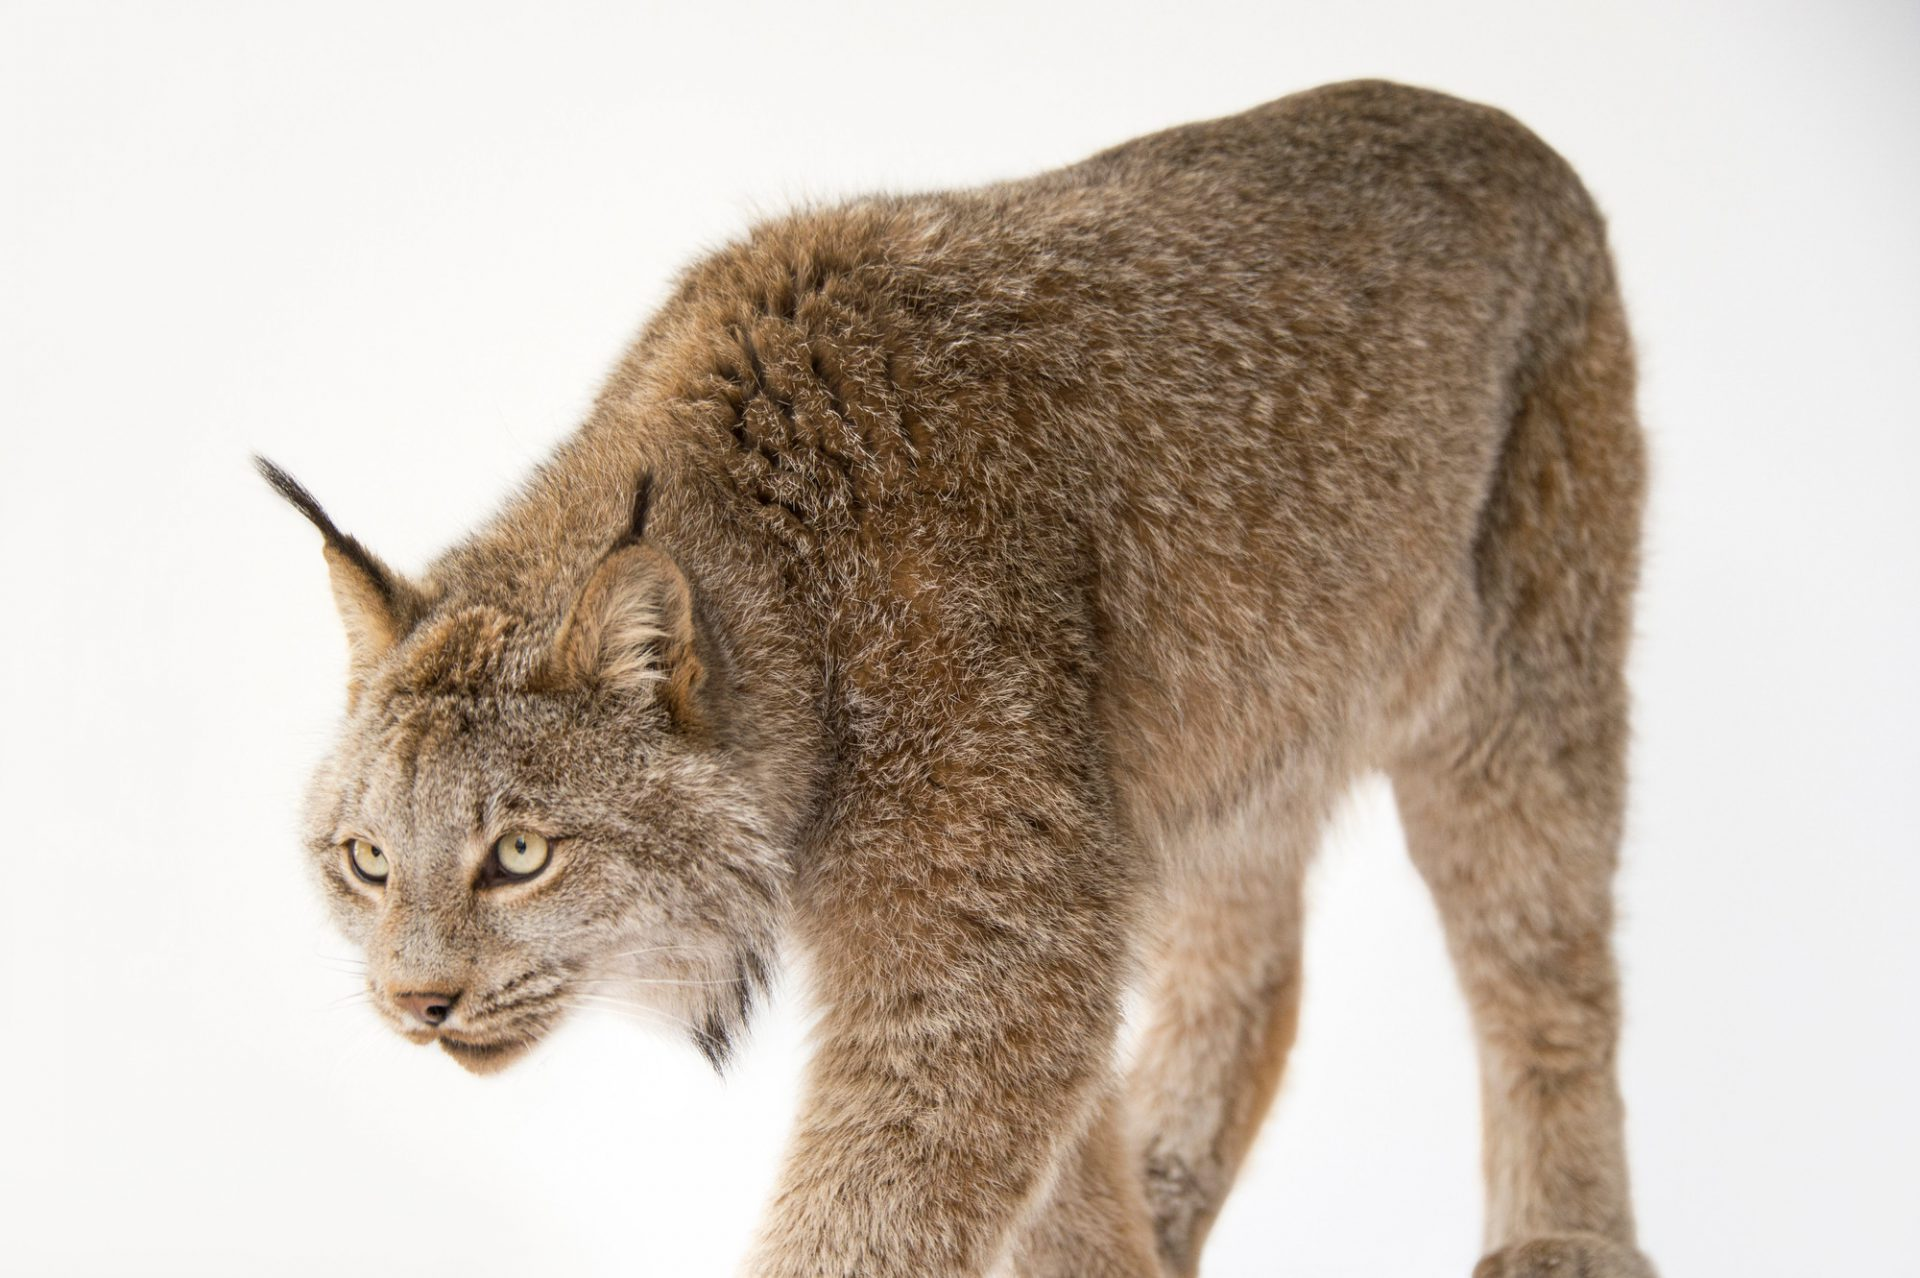 Picture of a federally threatened, Canada lynx (Lynx canadensis) named Yukon at Point Defiance Zoo.